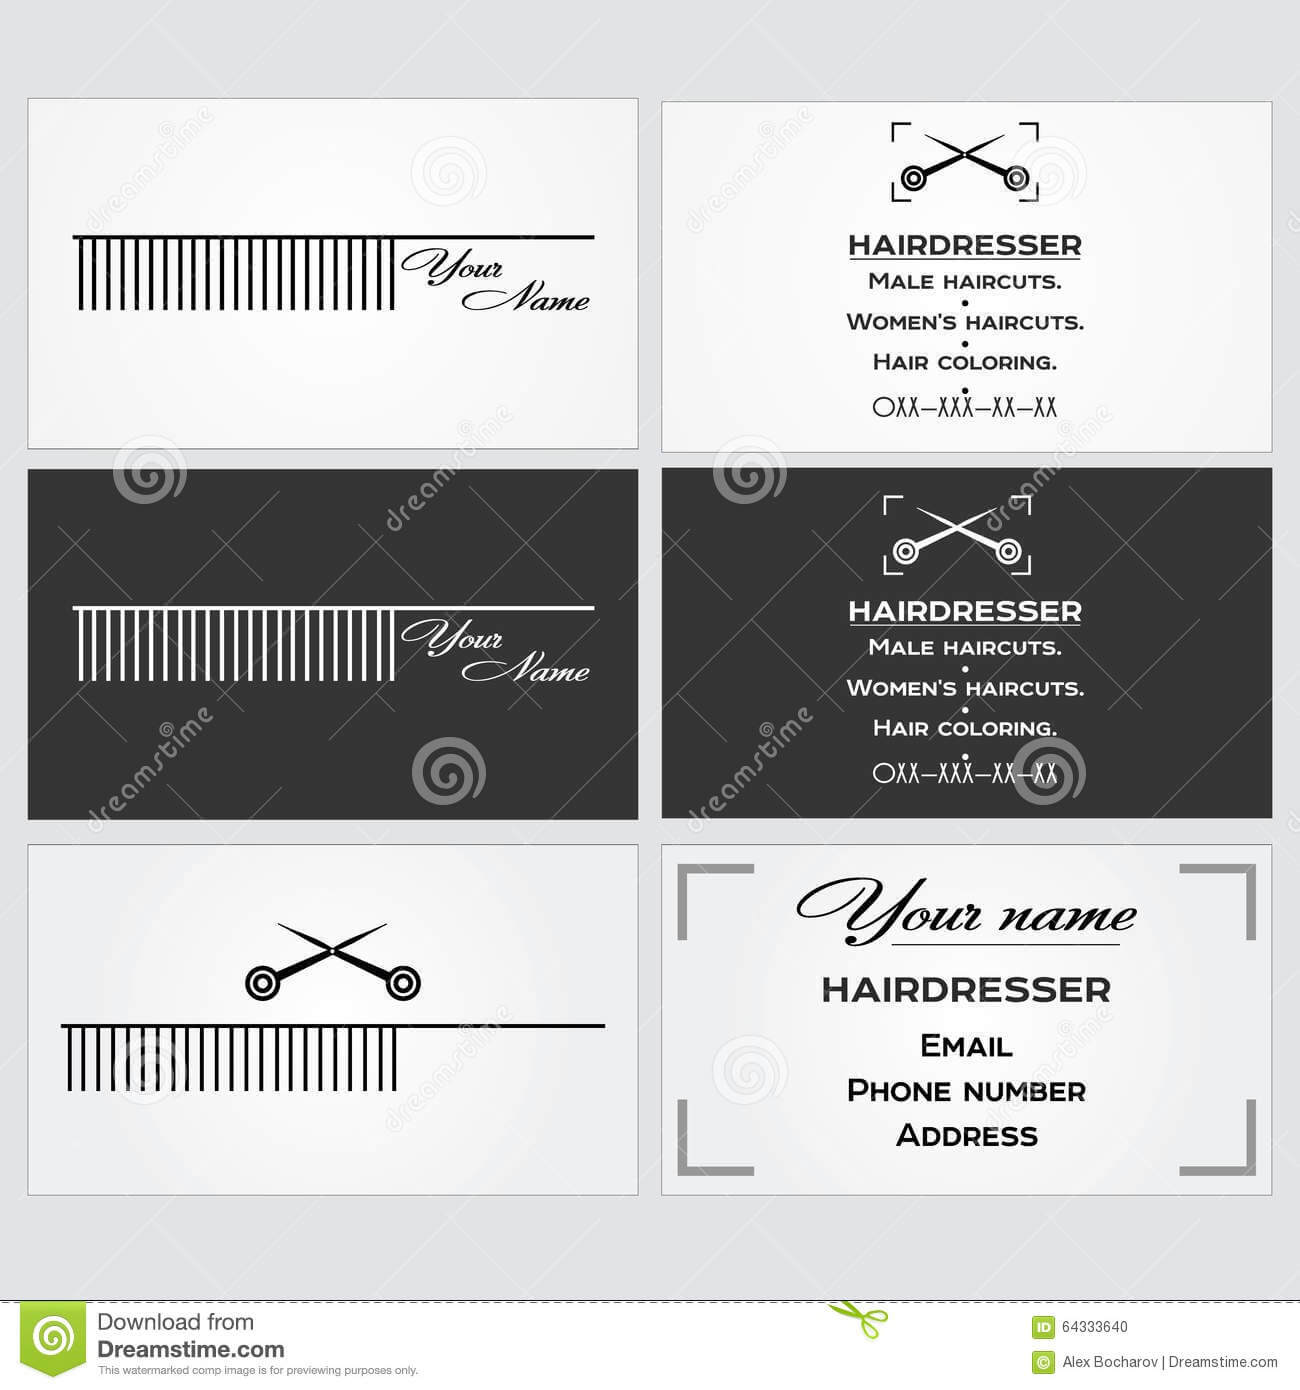 Business Card Template For A Hairdresser. Stock Vector Inside Hairdresser Business Card Templates Free